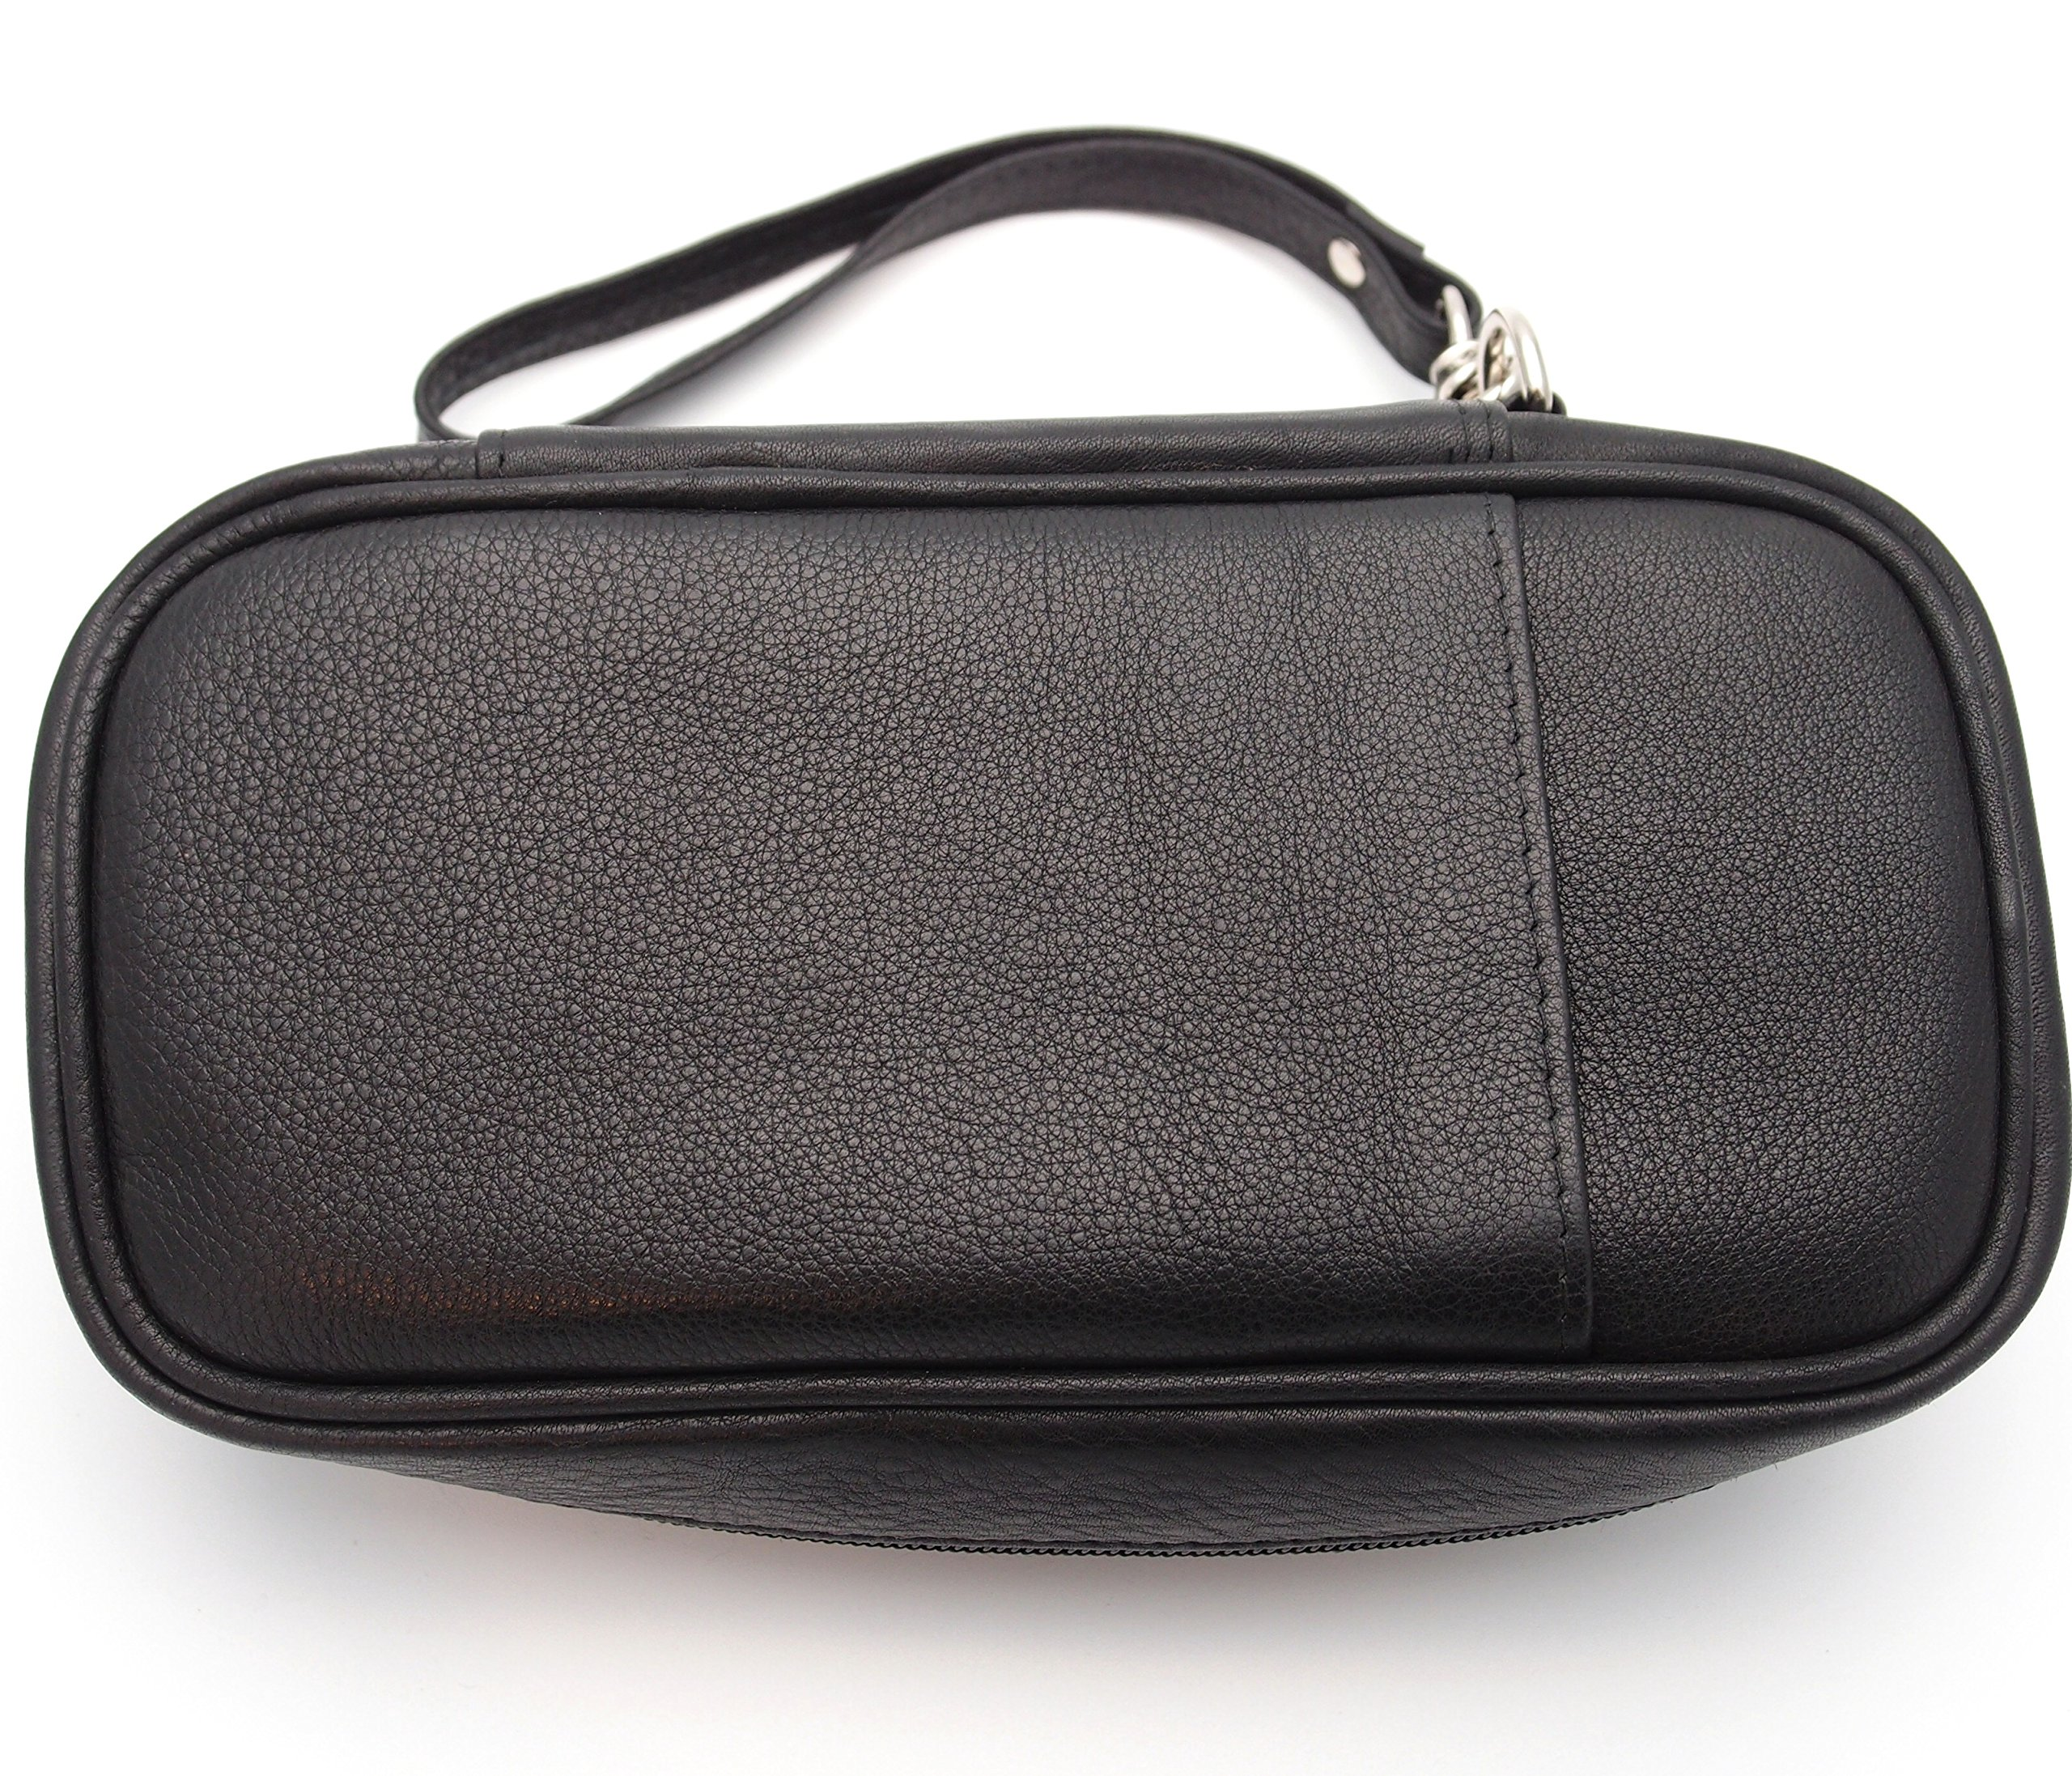 Tobacco Pipe Leather Case - 3 Pipes - Authentic Full Grade Leather - Black by Mr. Brog (Image #5)